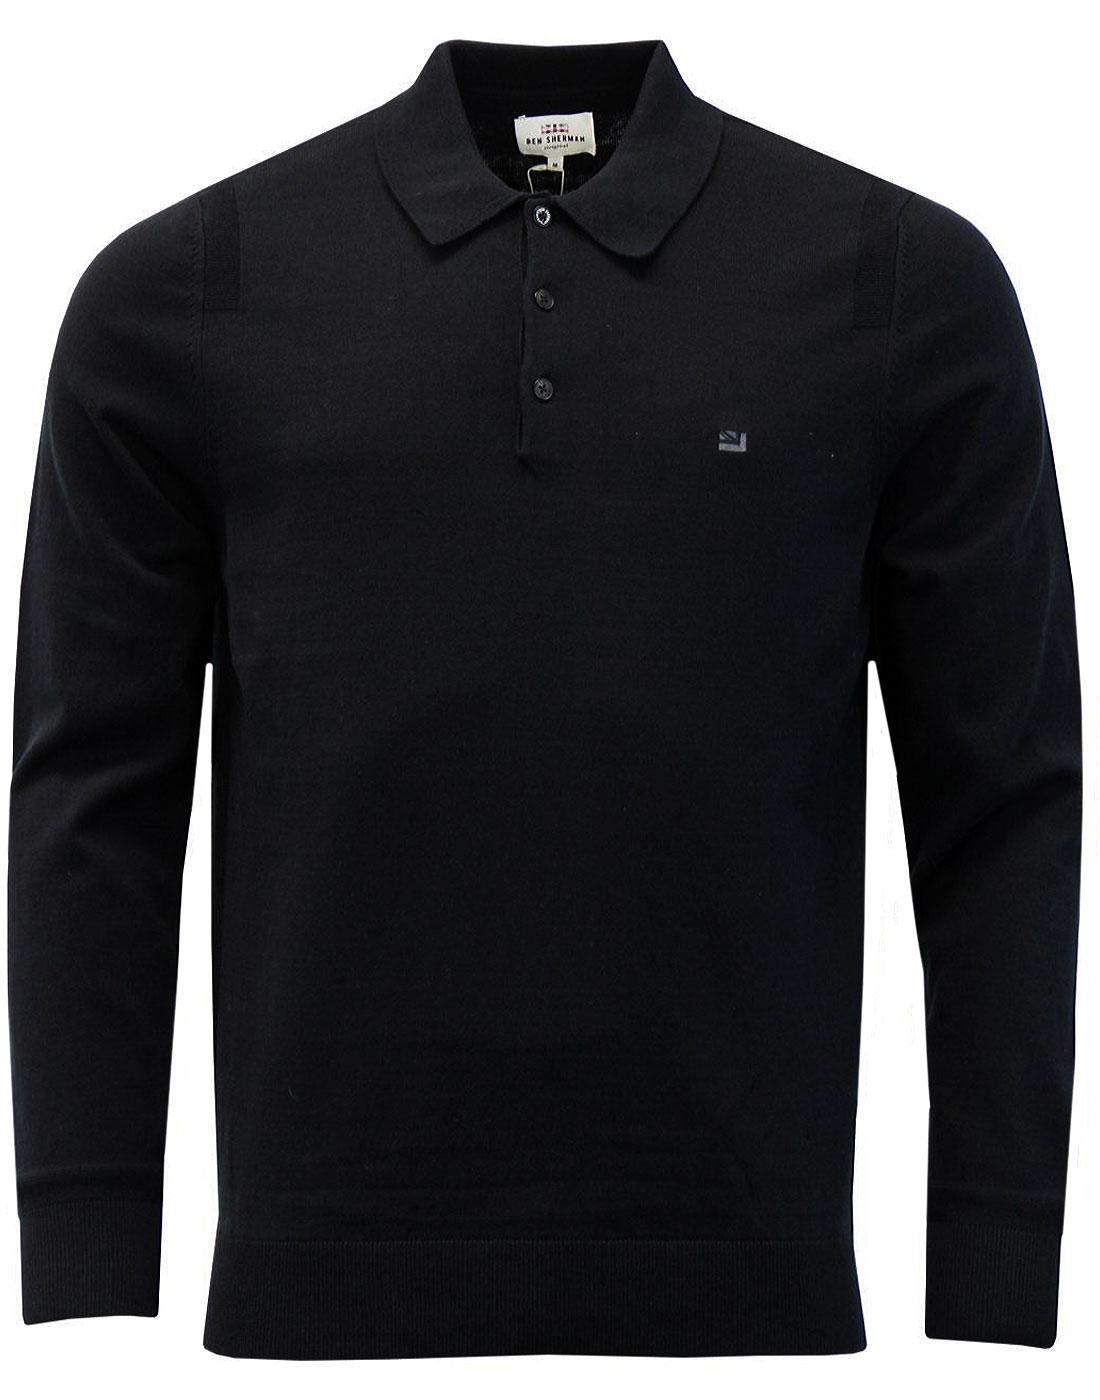 BEN SHERMAN Mod Long Sleeve Knitted Polo - Black